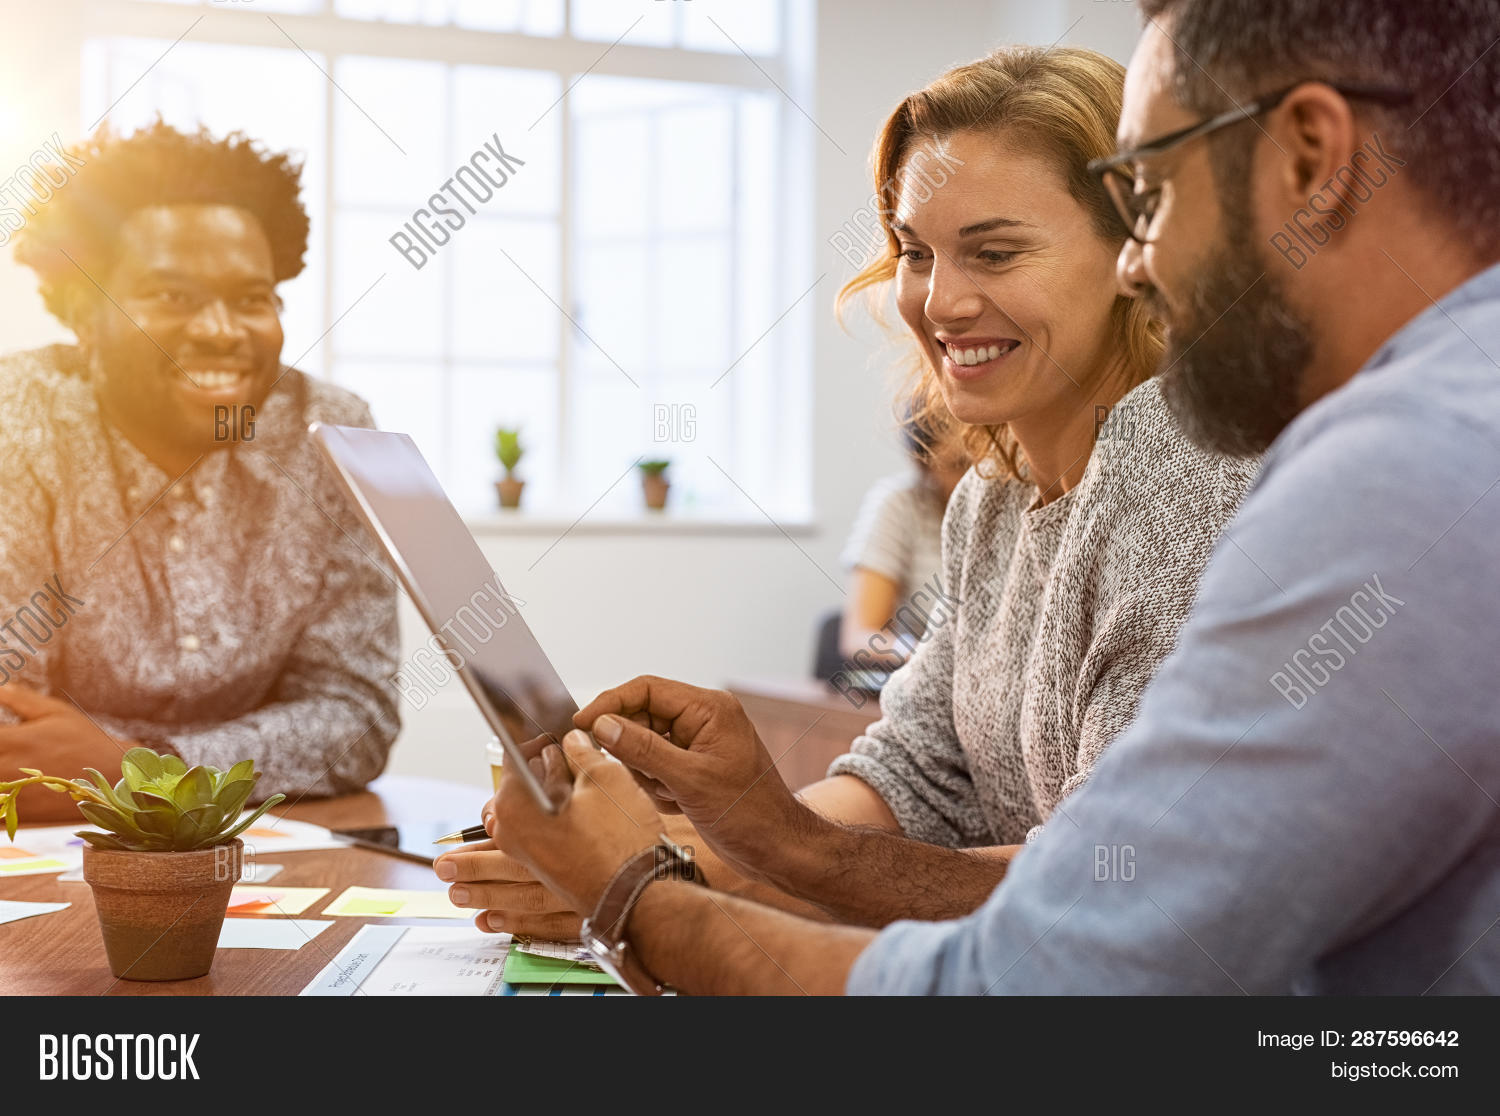 african american,boss and employee,business casual,businessman,businesswoman,casual business,casual business meeting,casual meeting,cheerful,co working,colleague,communication,computer,cooperate,corporate,creative,digital,digital tablet,discussion,discussion group,group,happy,indian man,lifestyle,man,mature,meeting,middle eastern,modern office,multi ethnic business,multi ethnic group,multiethnic,office,partnership,people,showing,sitting at table,smile,success,successful,tablet,team,teamwork,technology,together,toothy smile,using,using tablet,woman,work